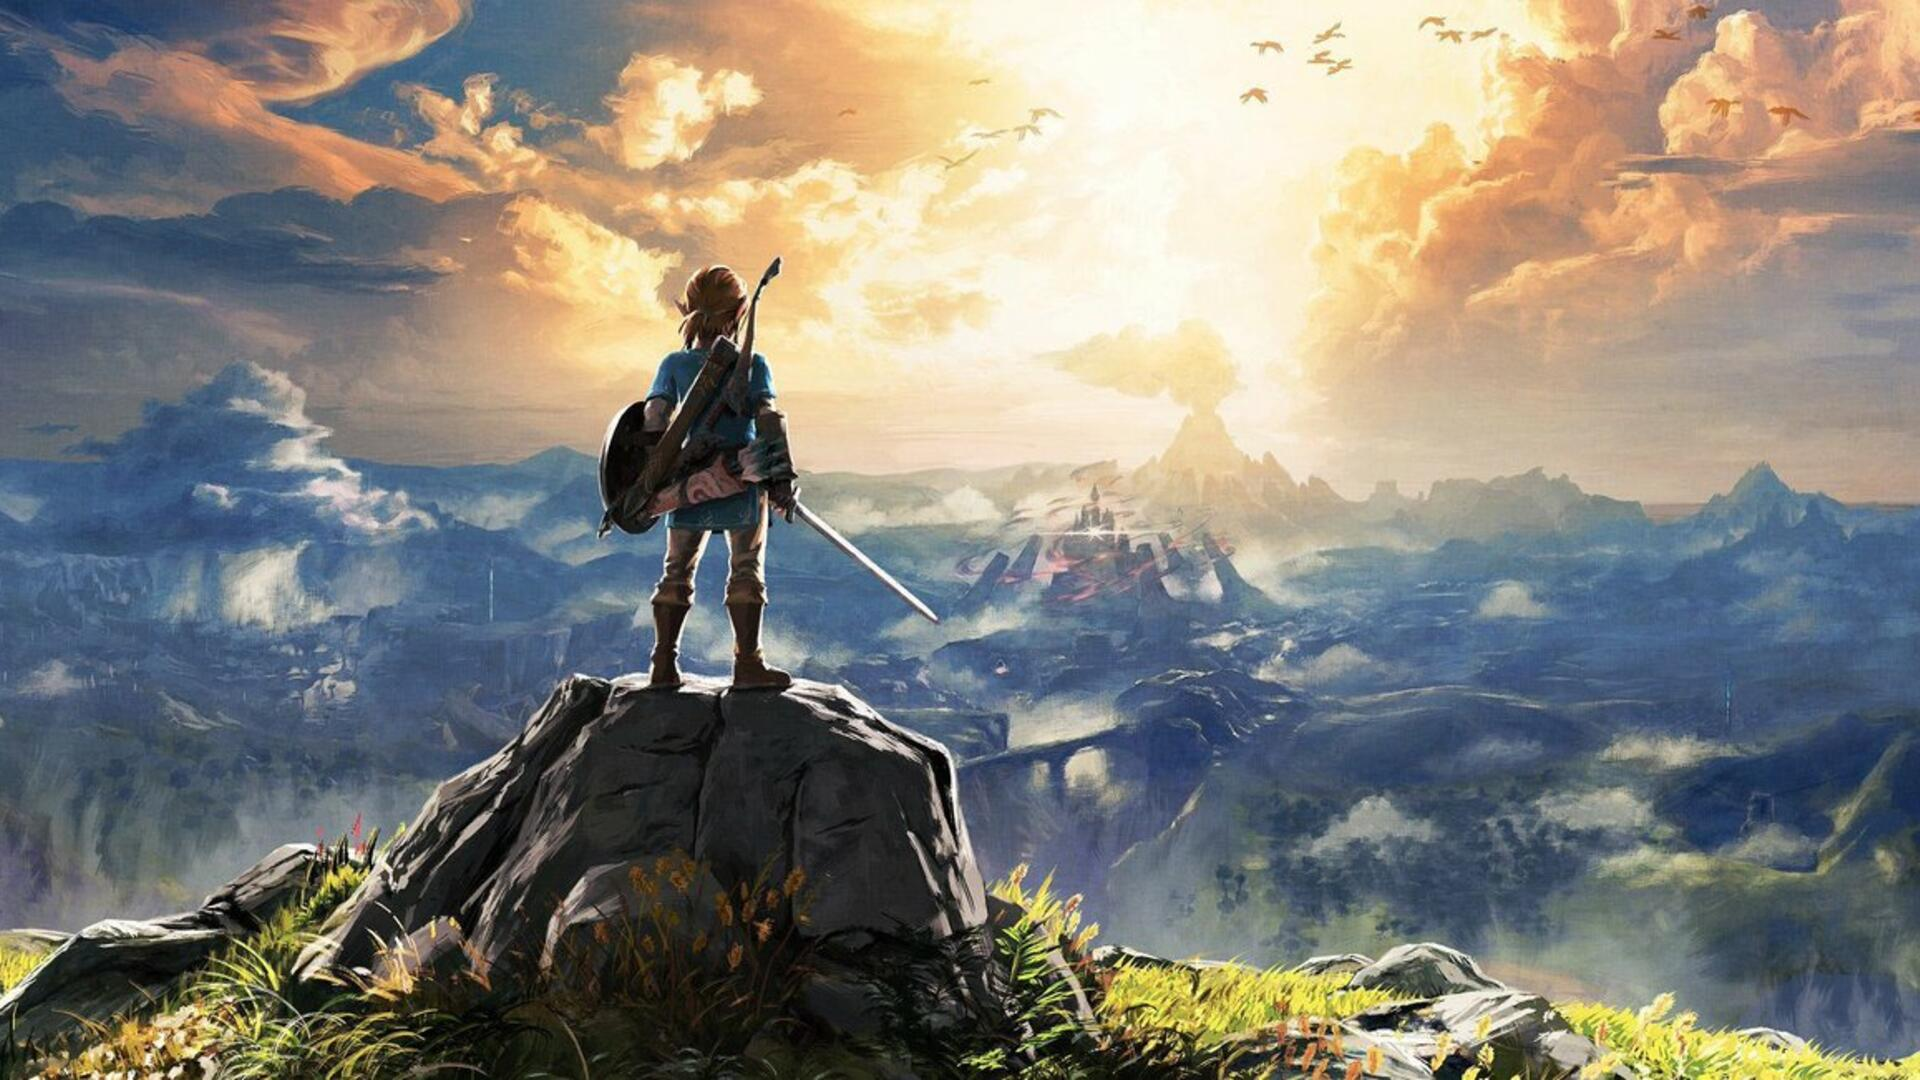 New Mod for The Legend of Zelda: Breath of the Wild Builds a Brutal New Shrine from the Ground-Up